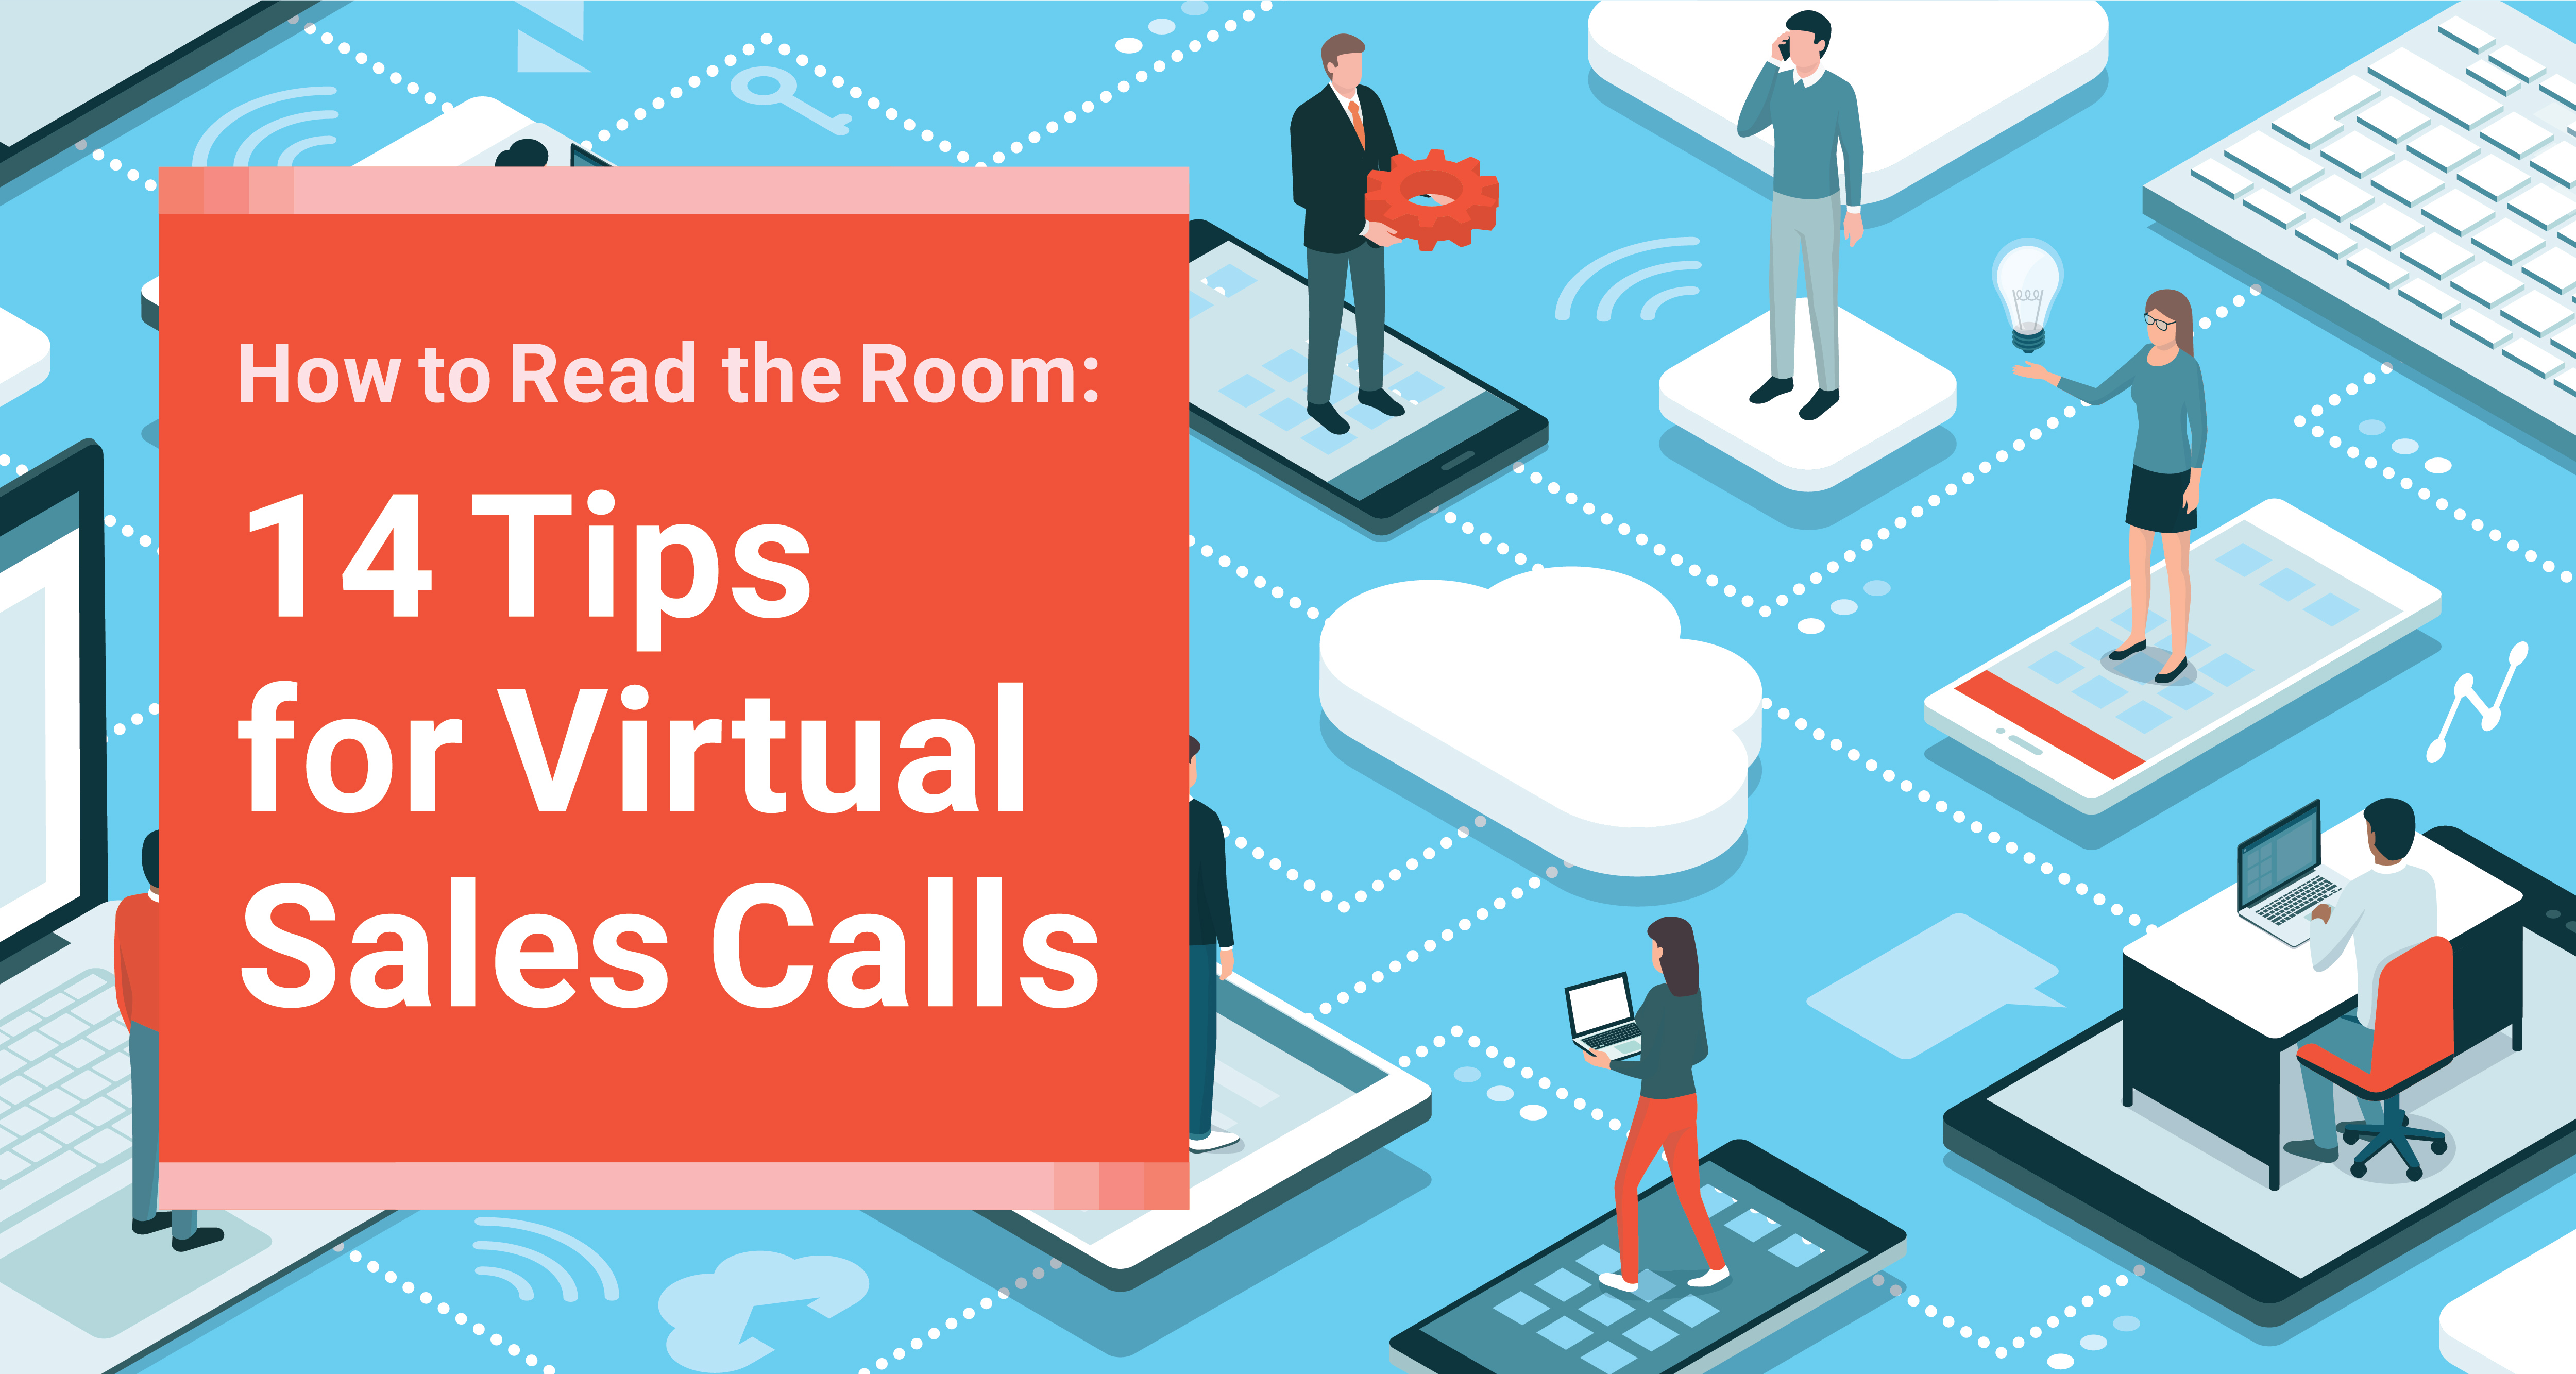 How to Read the Room: 14 Tips for Virtual Sales Calls